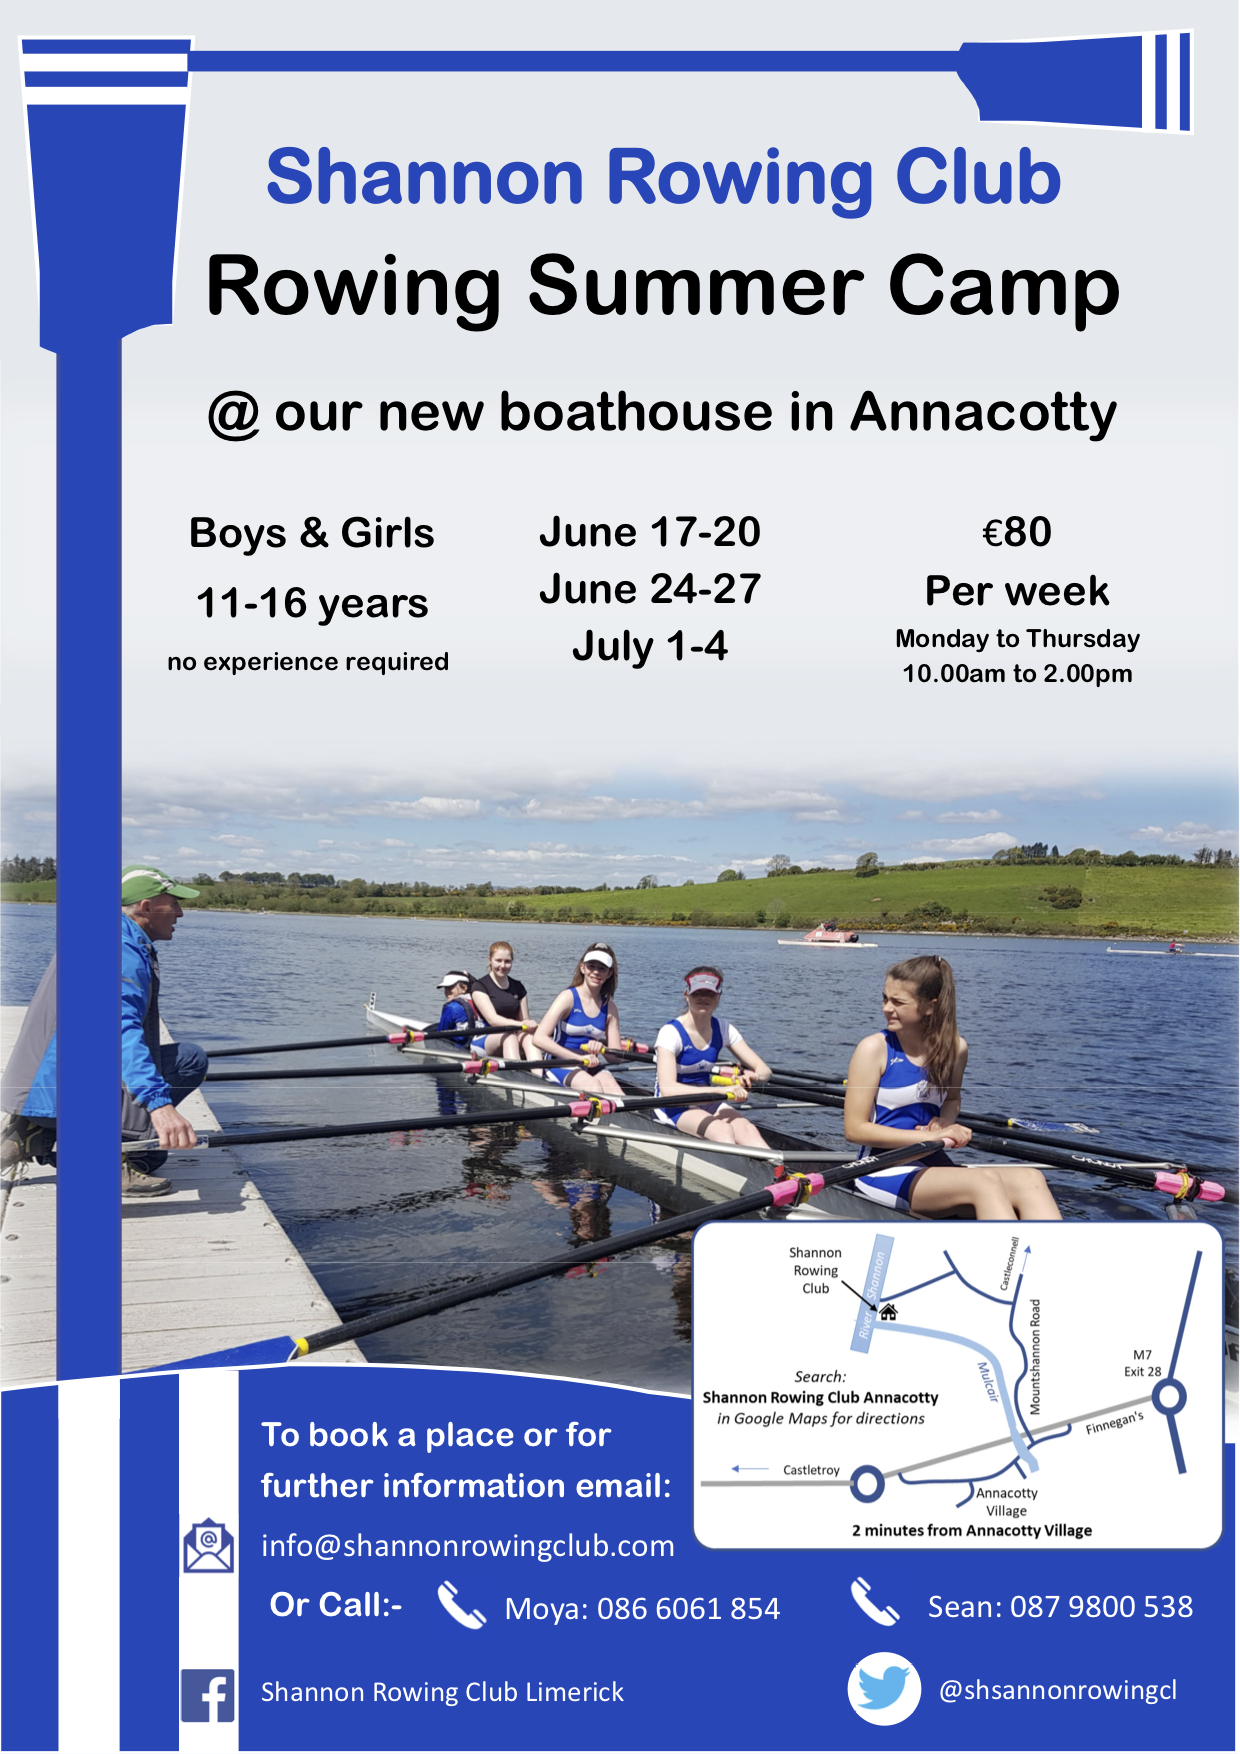 Shannon Rowing Club Summer Camp 2019